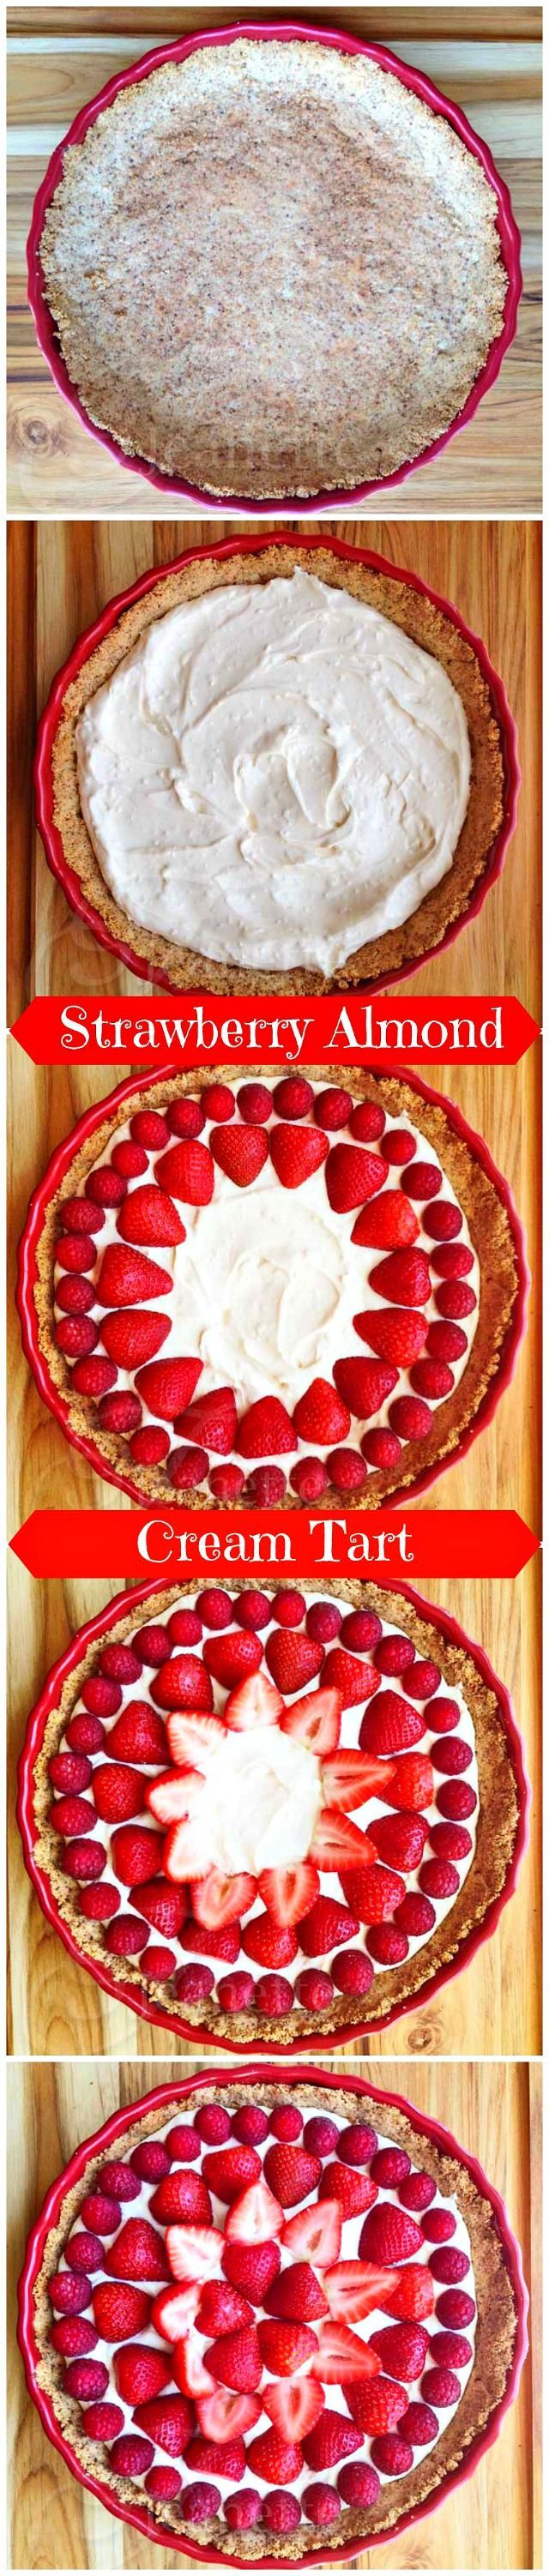 How To Make Strawberry Almond Cream Tart © Jeanette's Healthy Living #glutenfree #dessert #strawberry